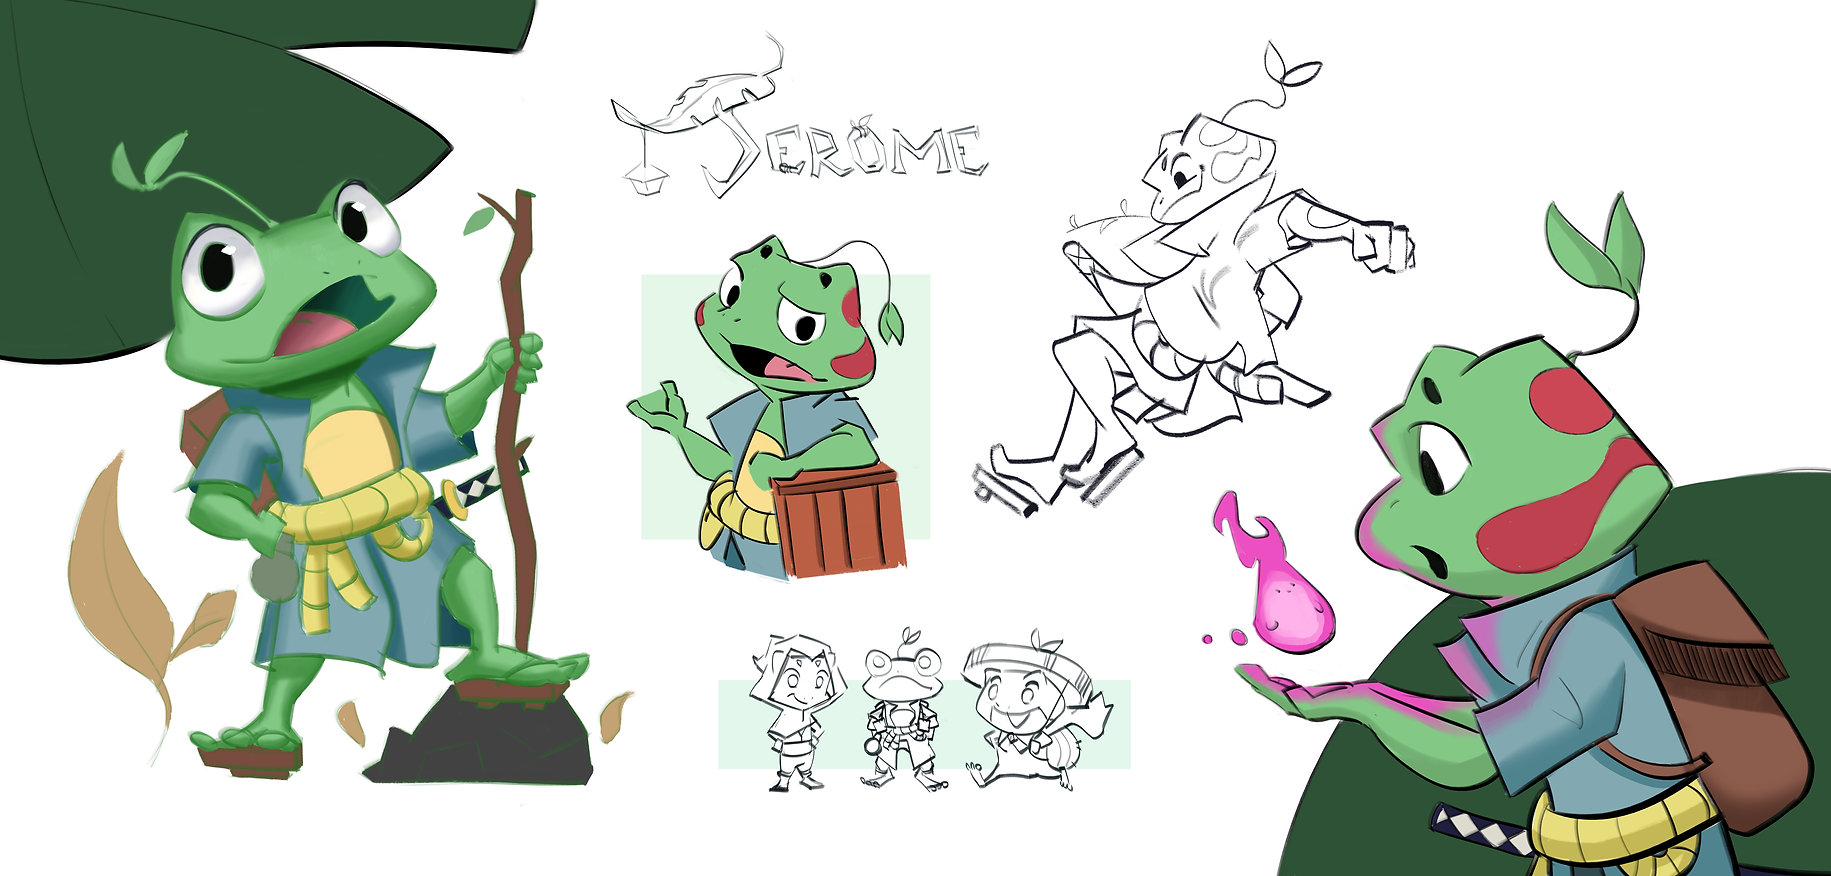 Jerome Character Page 02.jpg